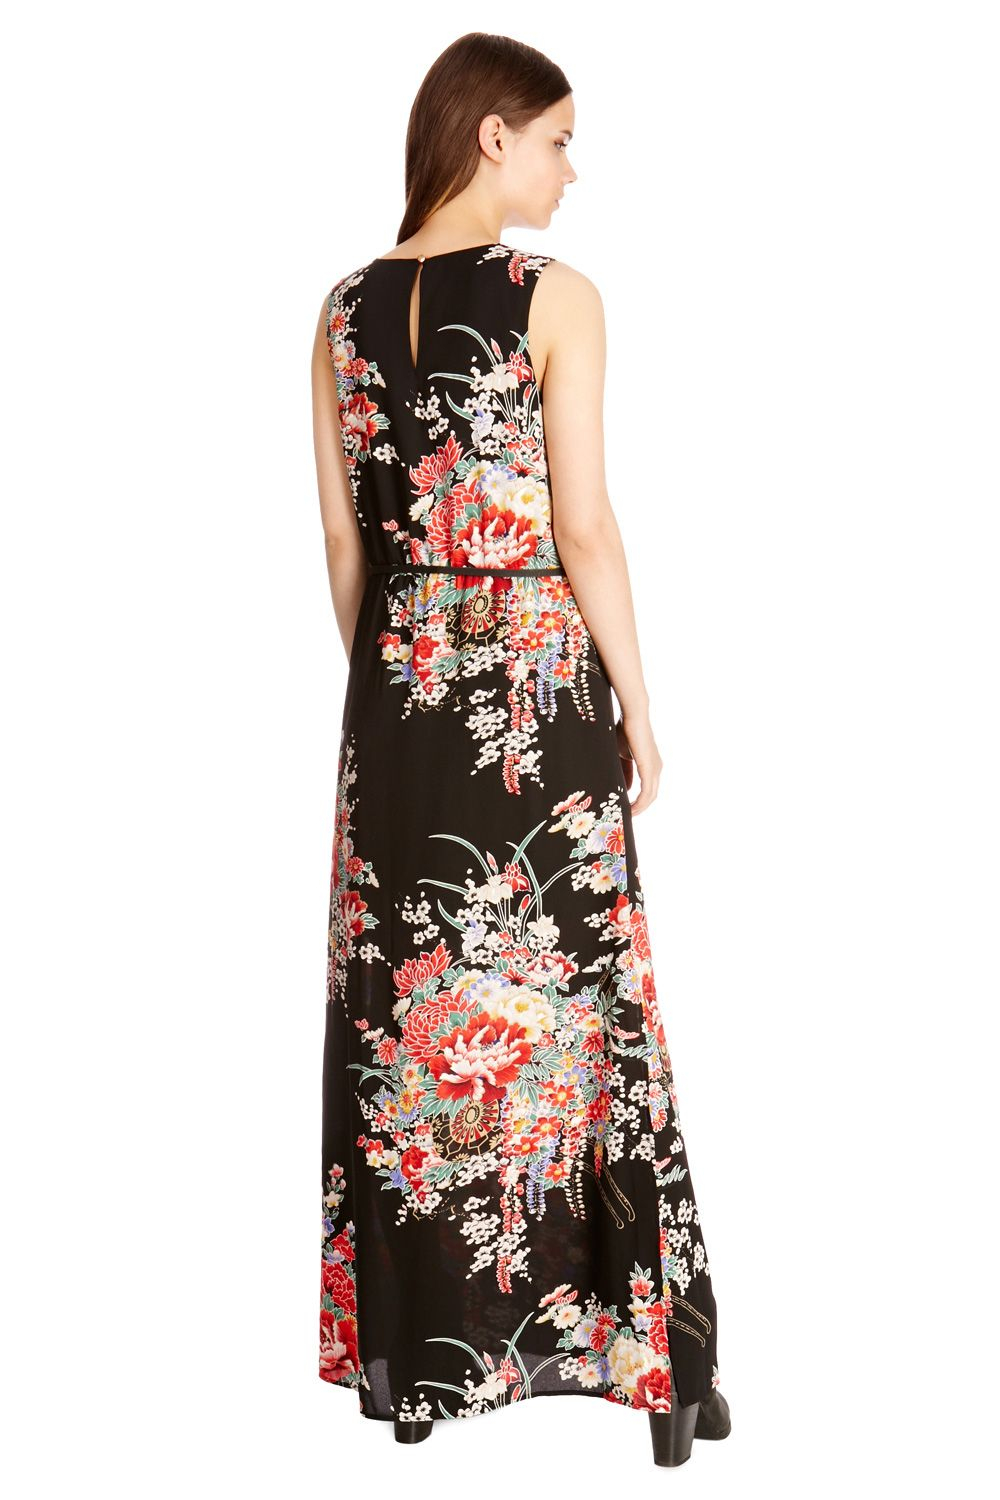 All clear, Asian print dresses curiously